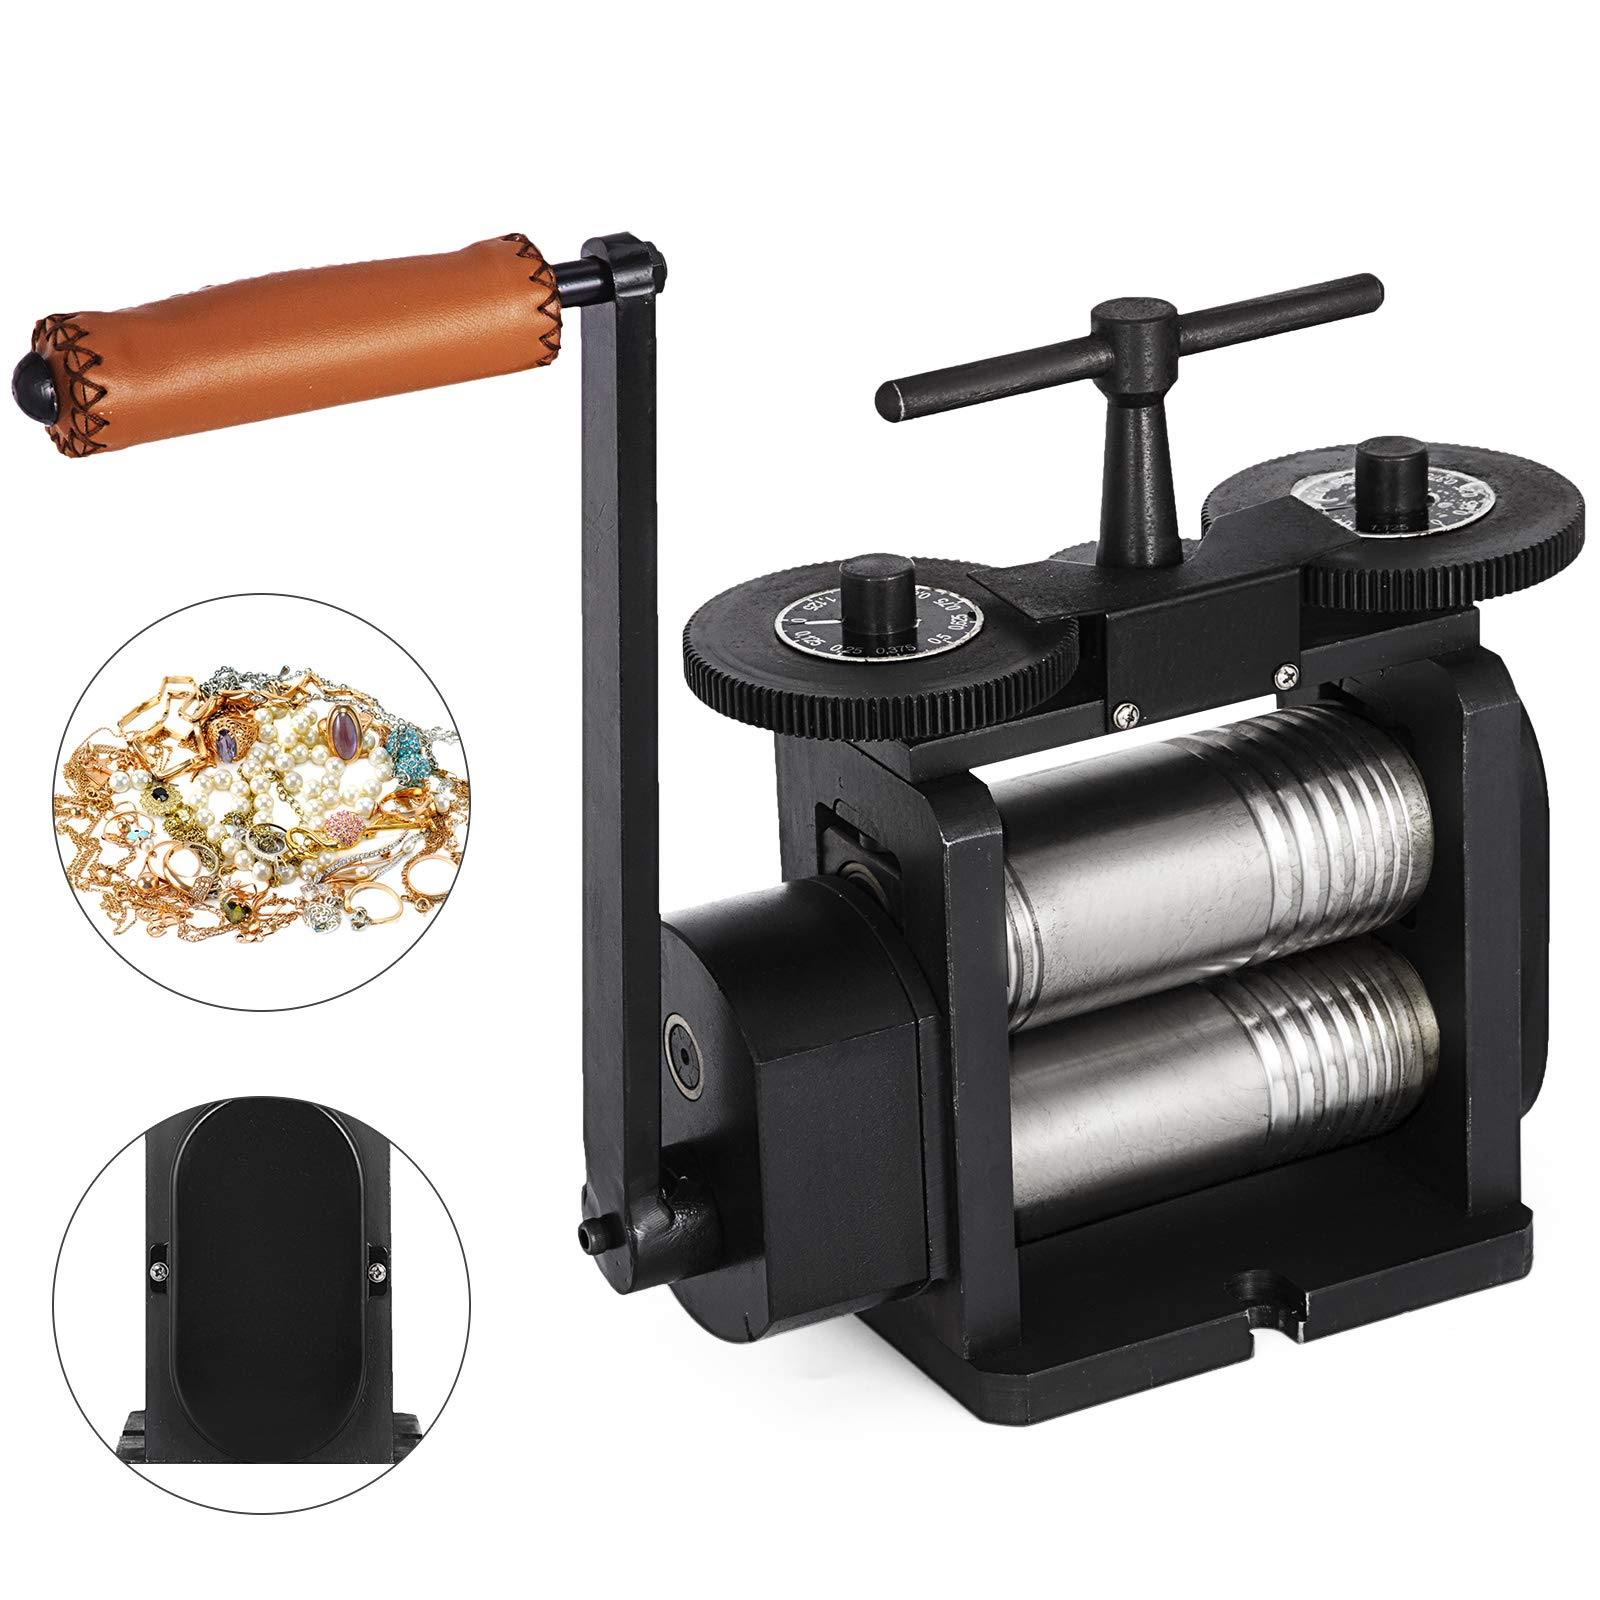 Mophorn Jewelry Rolling Mill Combination Rolling Mill 130mm Wide 65mm Diameter Rollers Manual Rolling Mill Machine Jewelry Marking Tools for Jewelers and Crafts-People